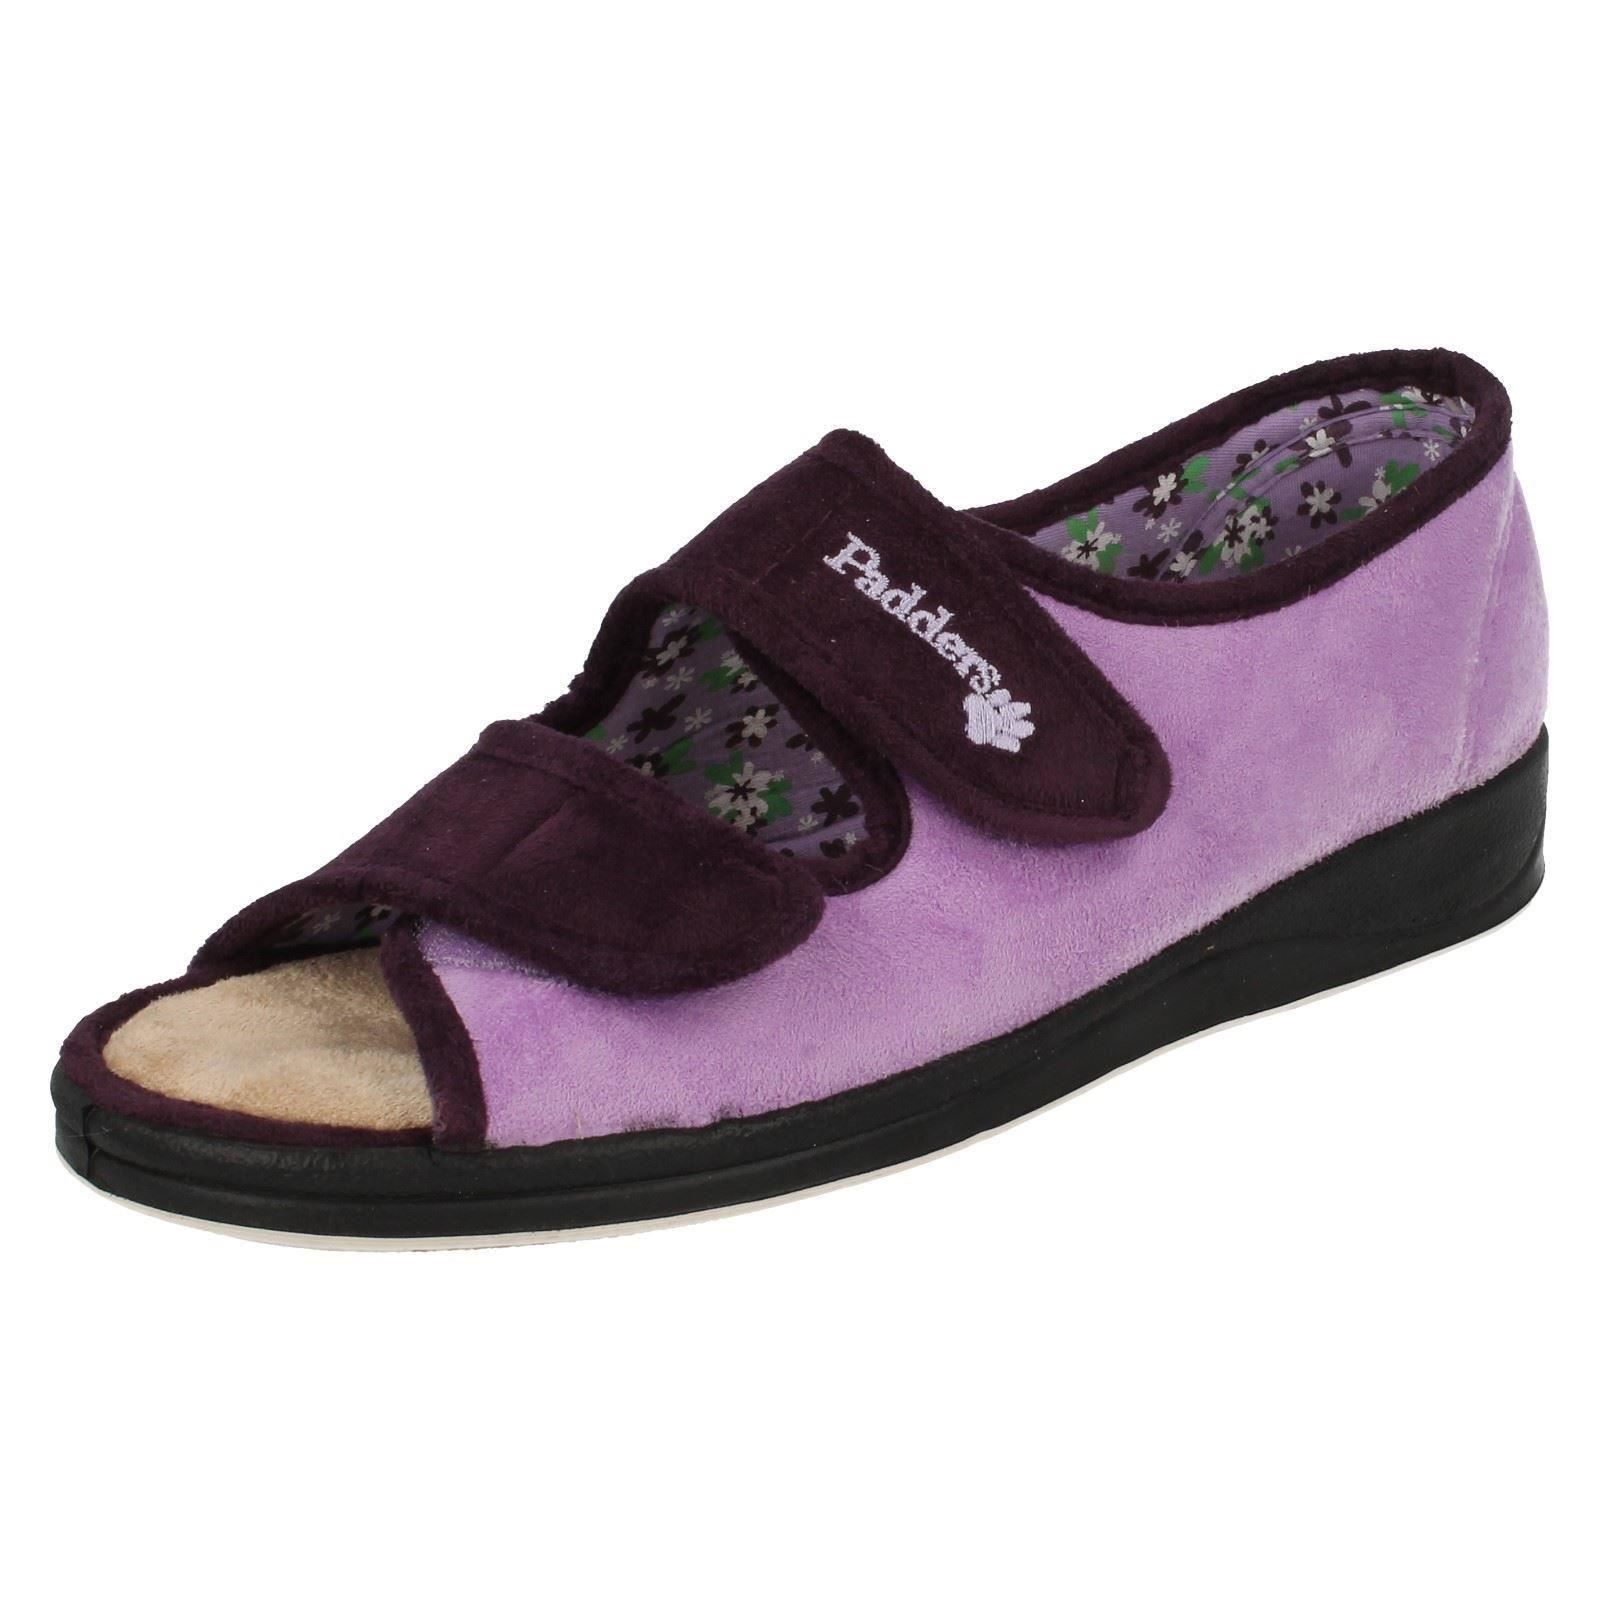 Padders Shoes Sale